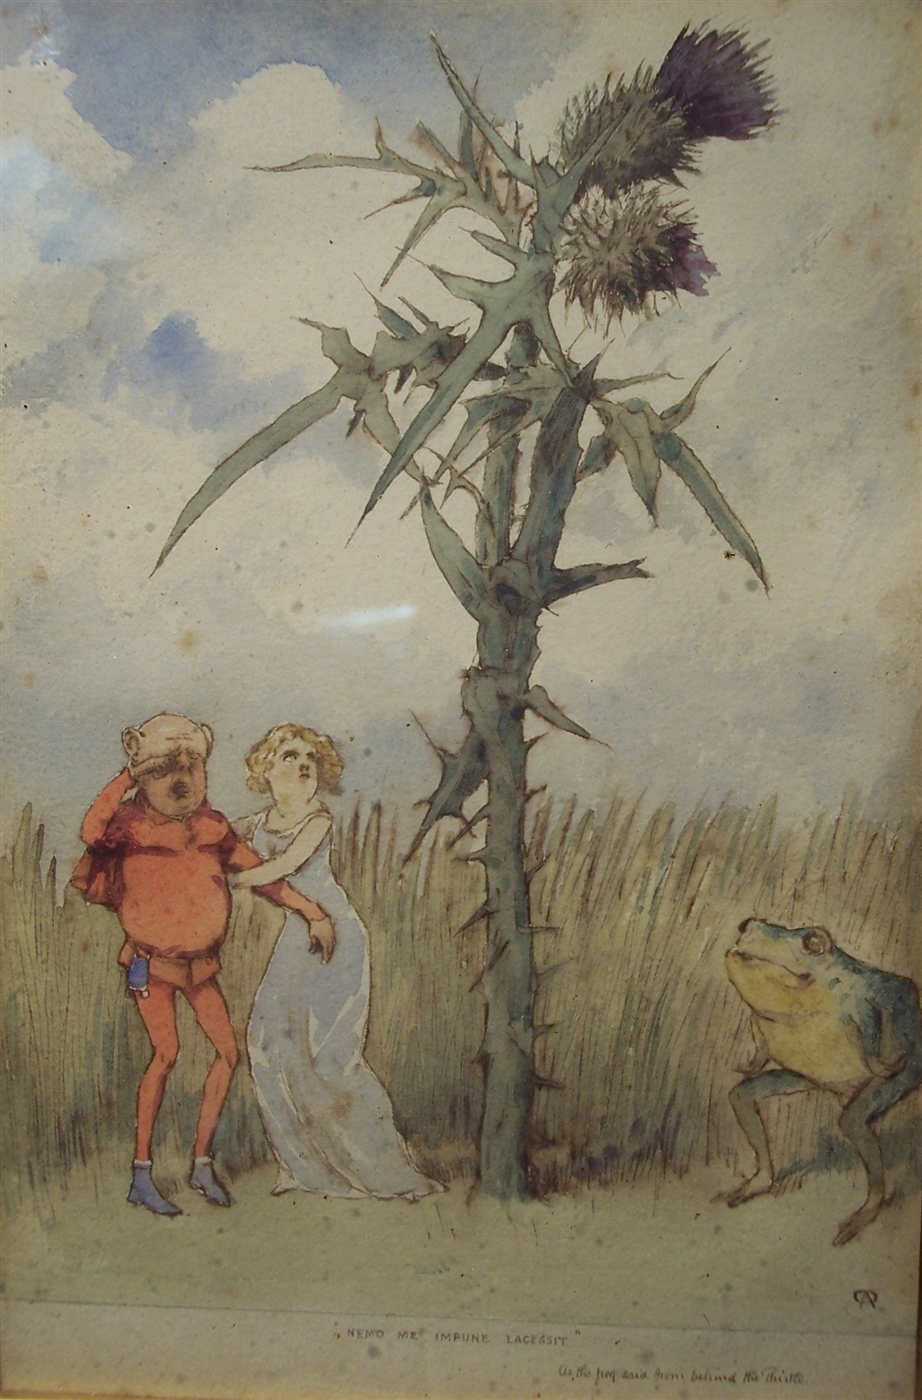 Charles Altamont Doyle - Nemo Me Impune Lacessit as the Frog Said Beyond the Thistle